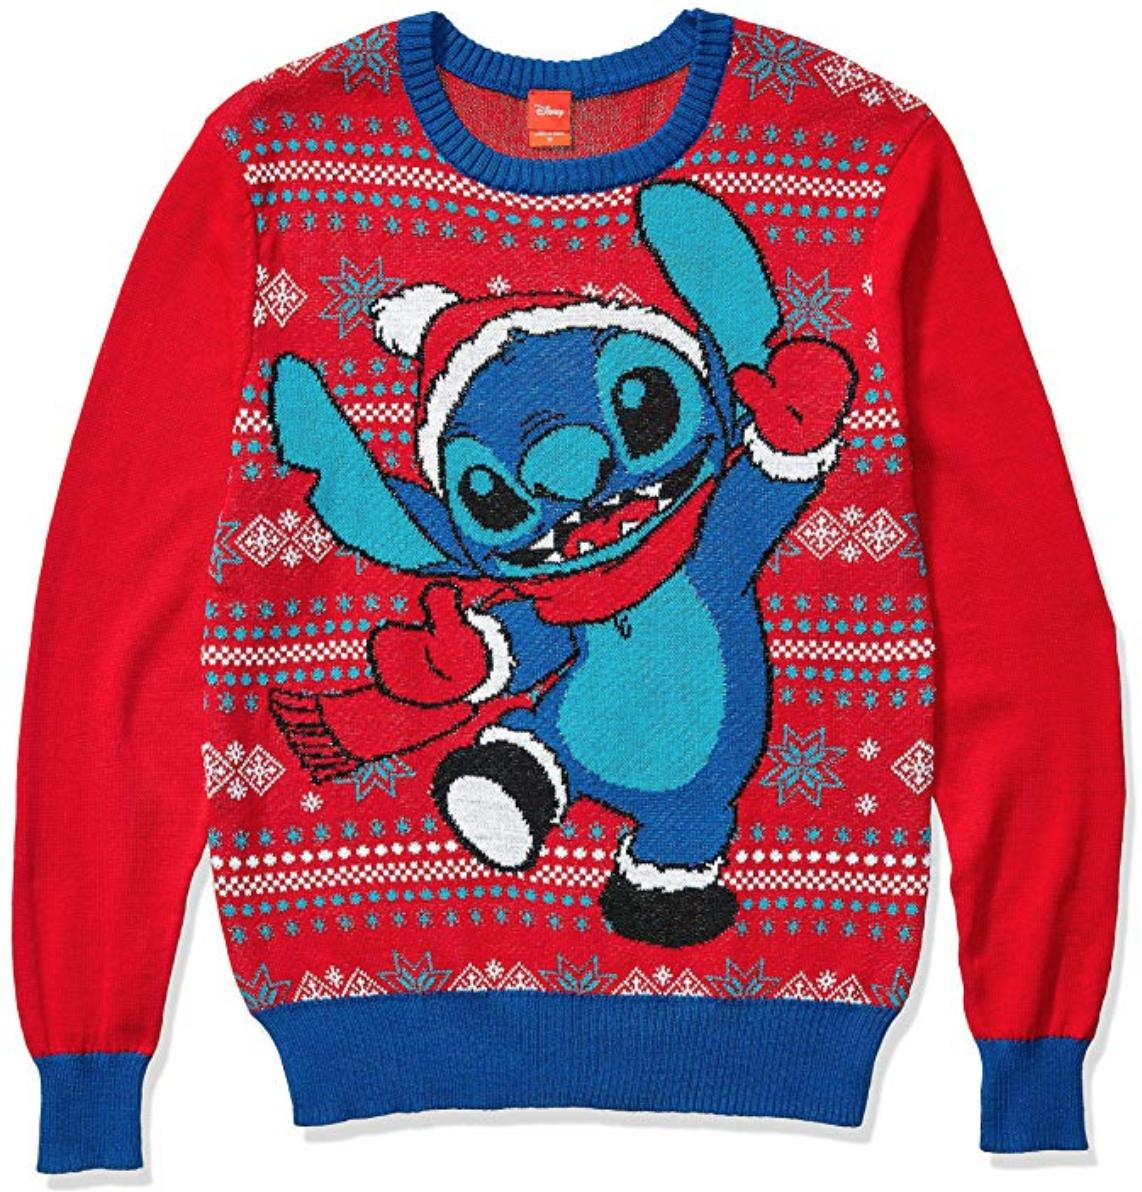 Stitch in mittens and a hat dances against a red and blue background.